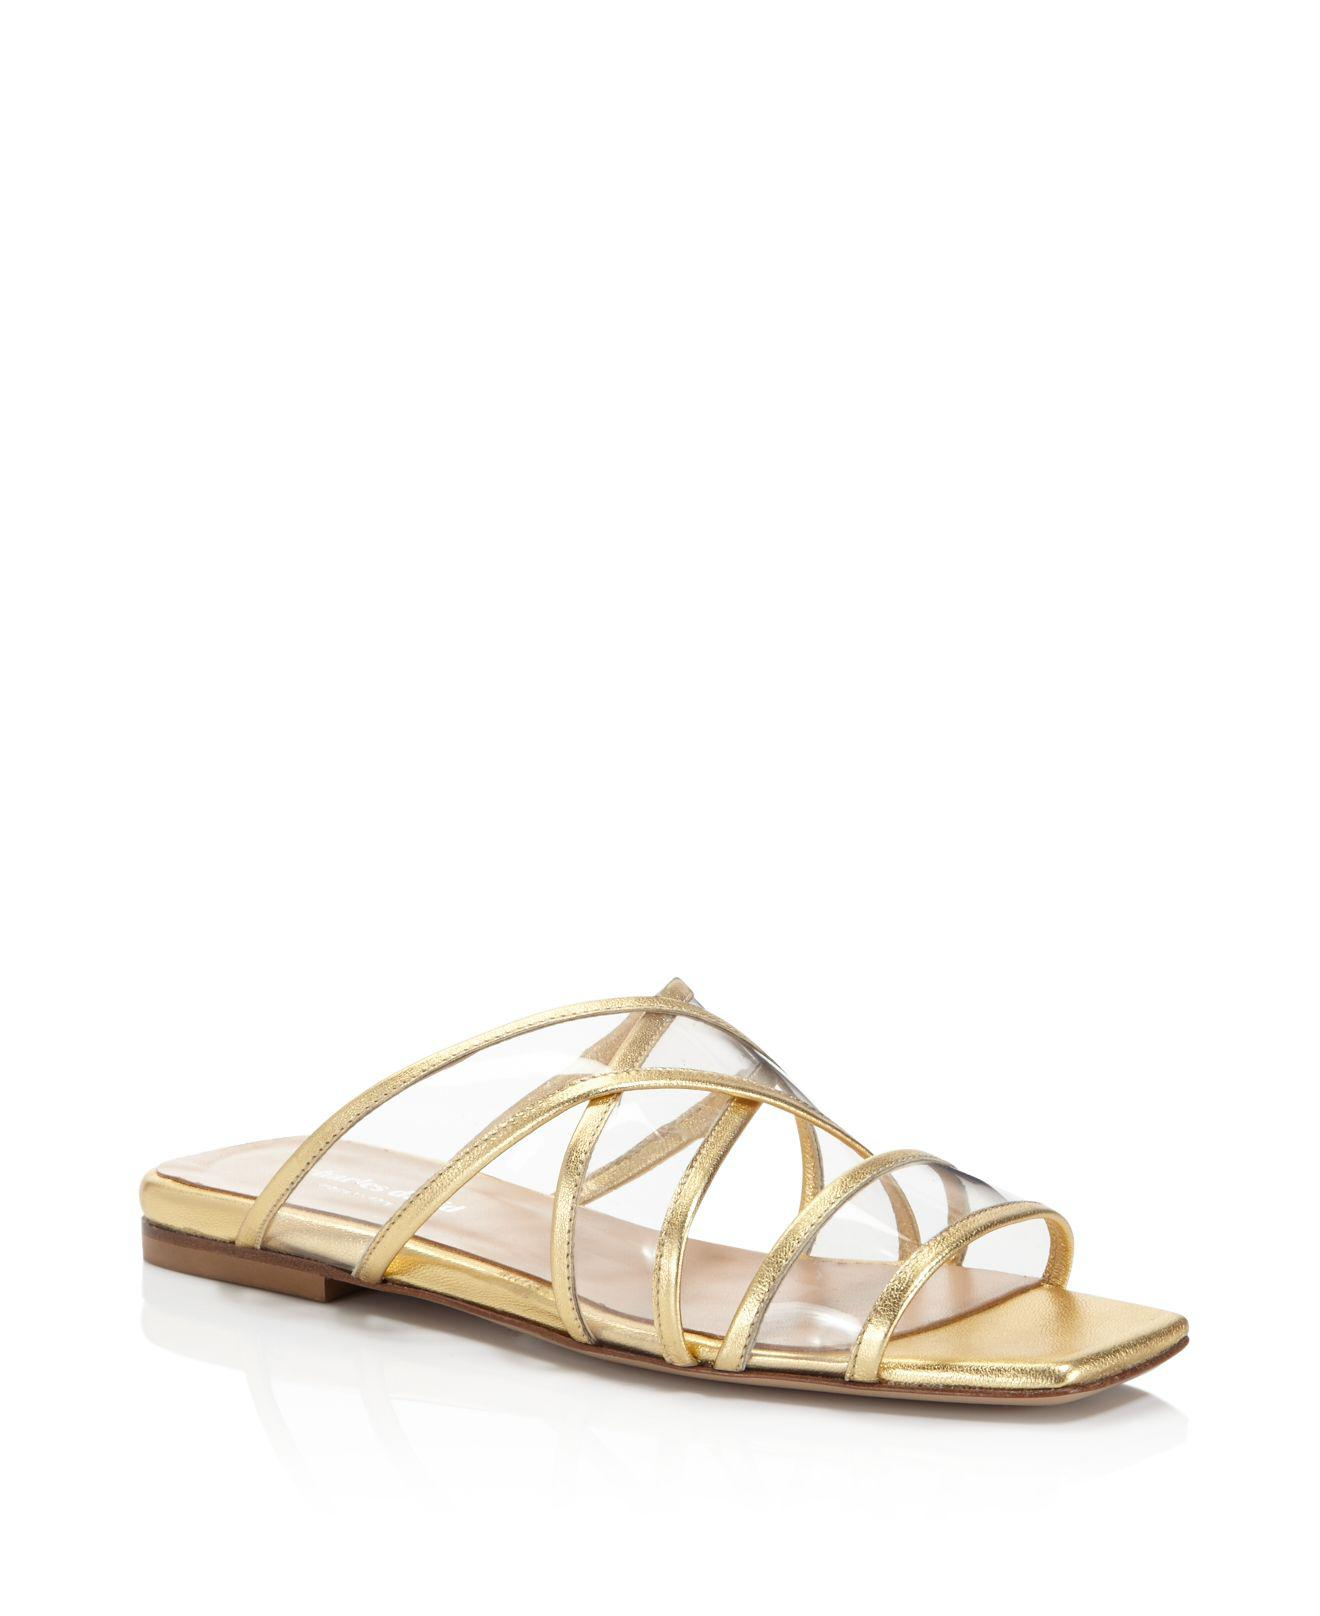 Charles David Women's Drea Strappy Patent Leather Illusion Slide Sandals XAjyMk